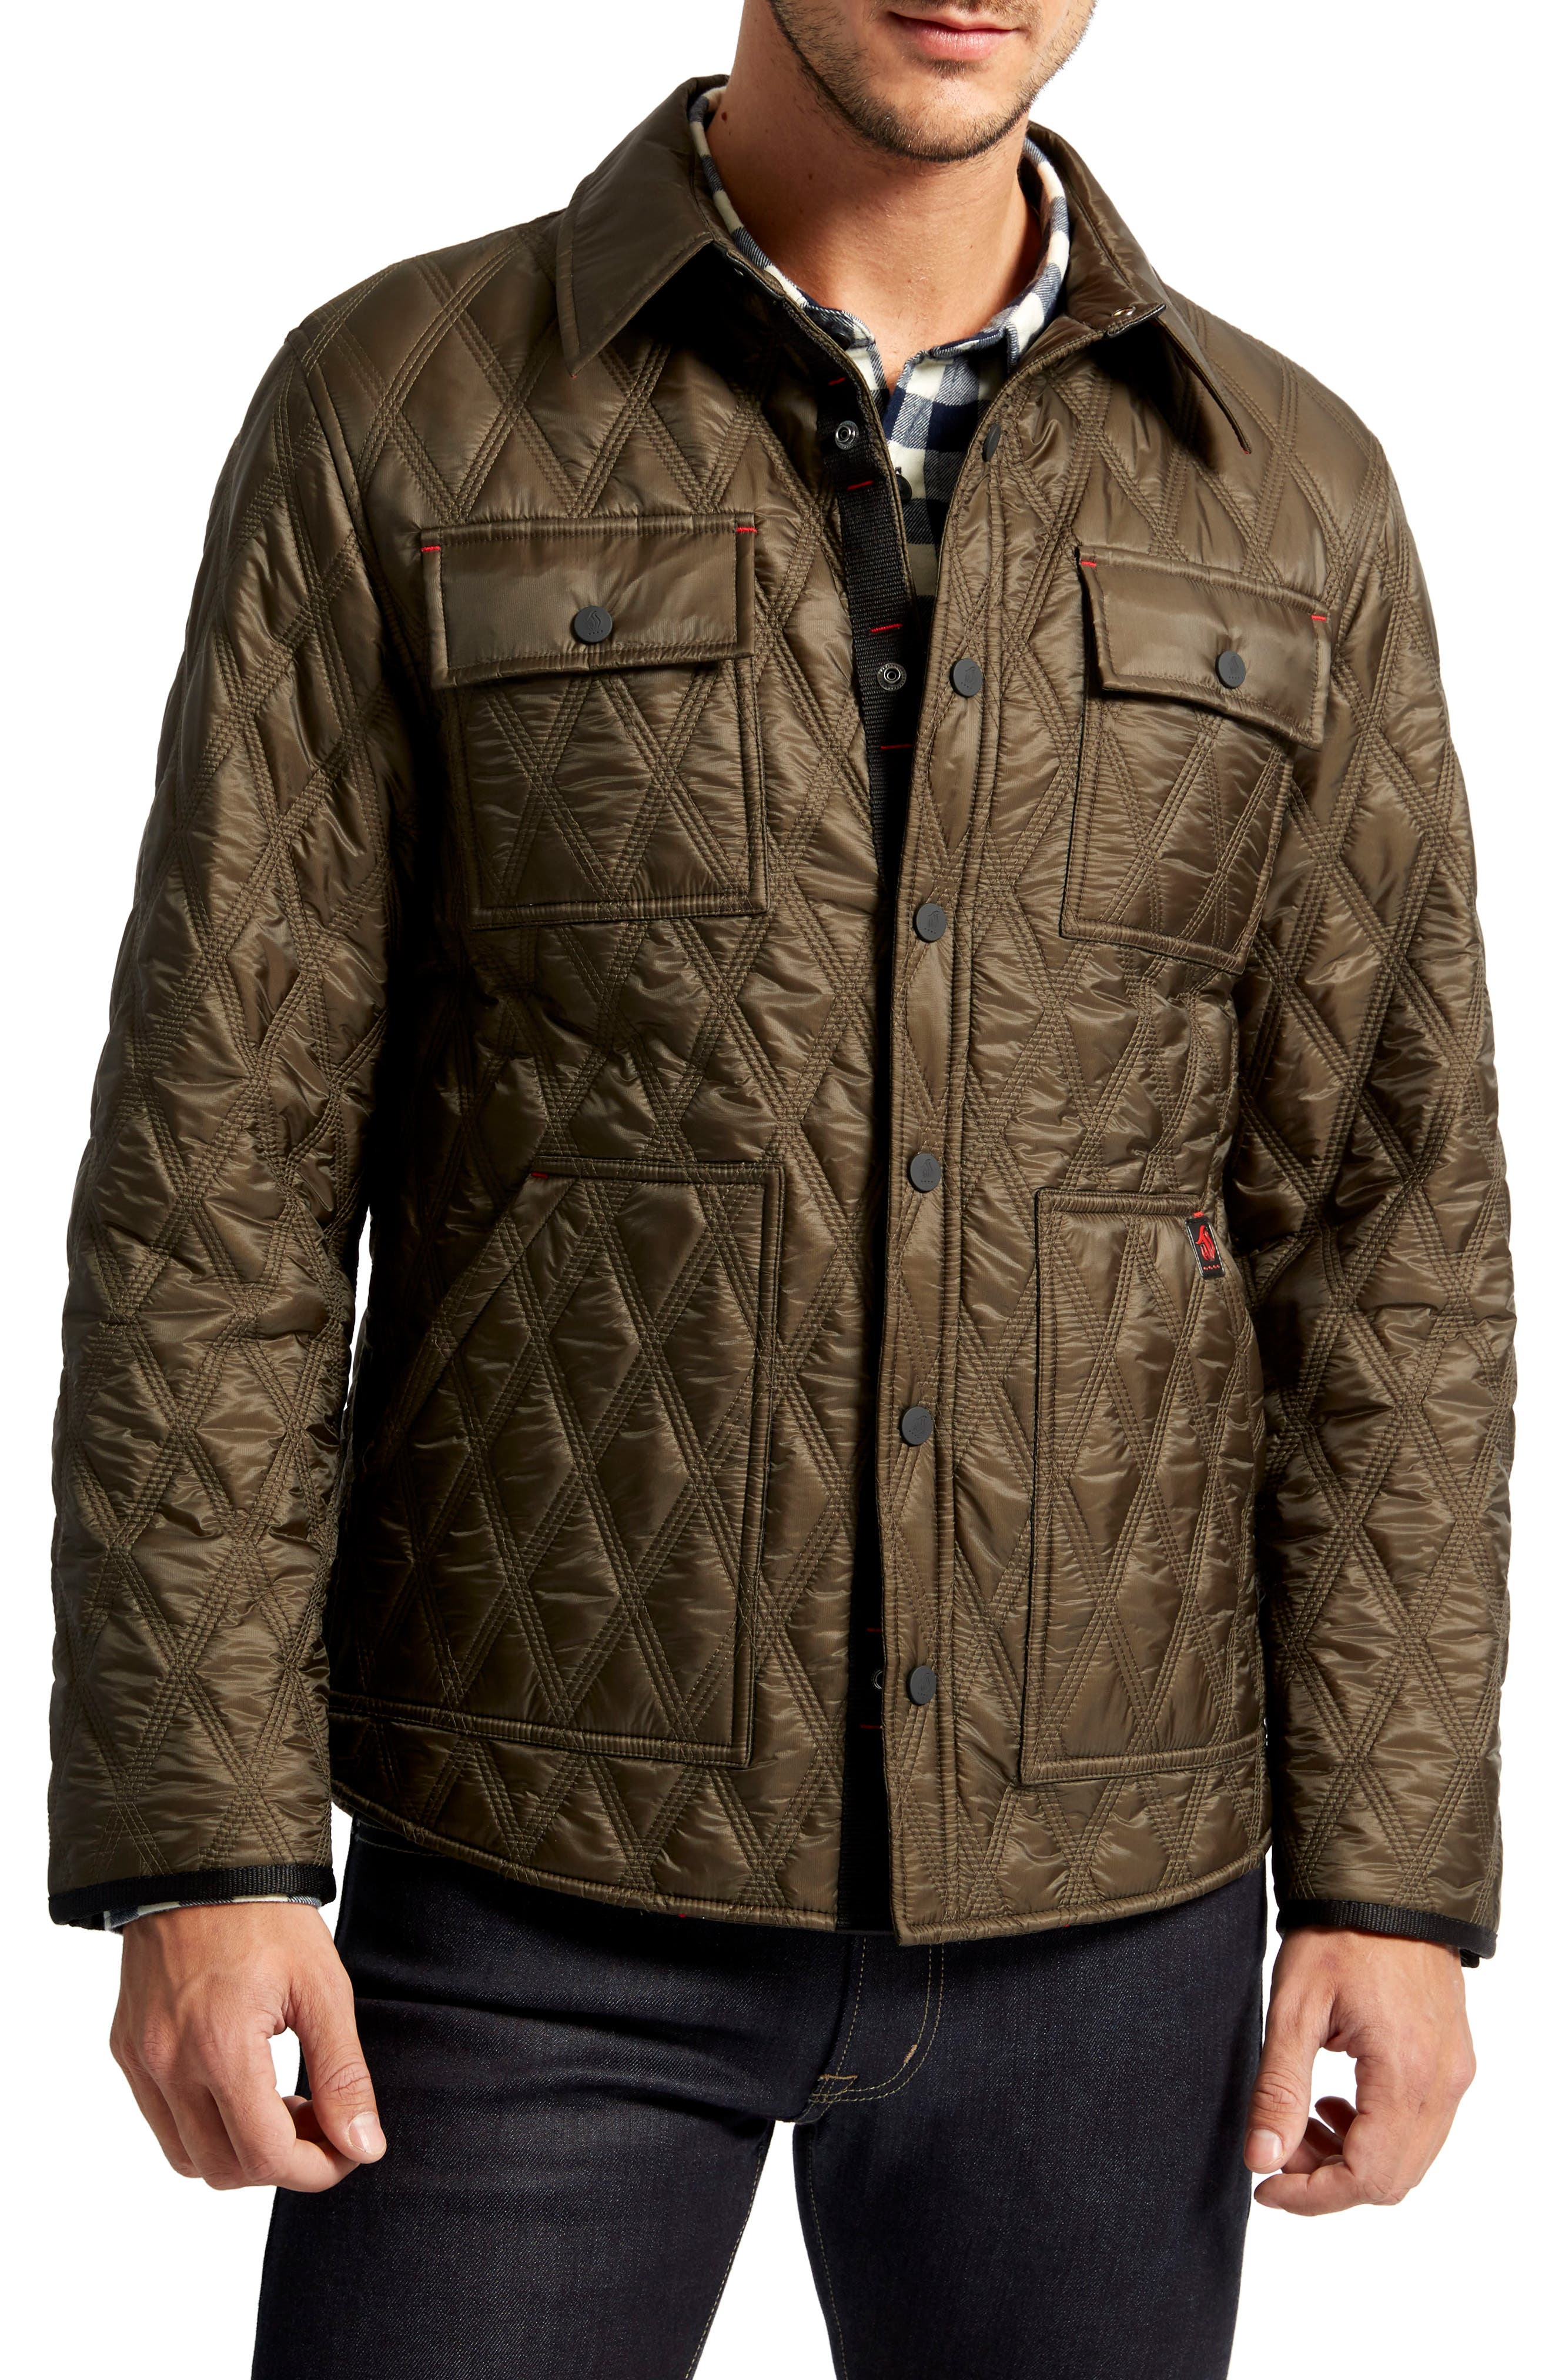 Searcy Heat System Triple Stitch Quilted Jacket,                         Main,                         color, 339